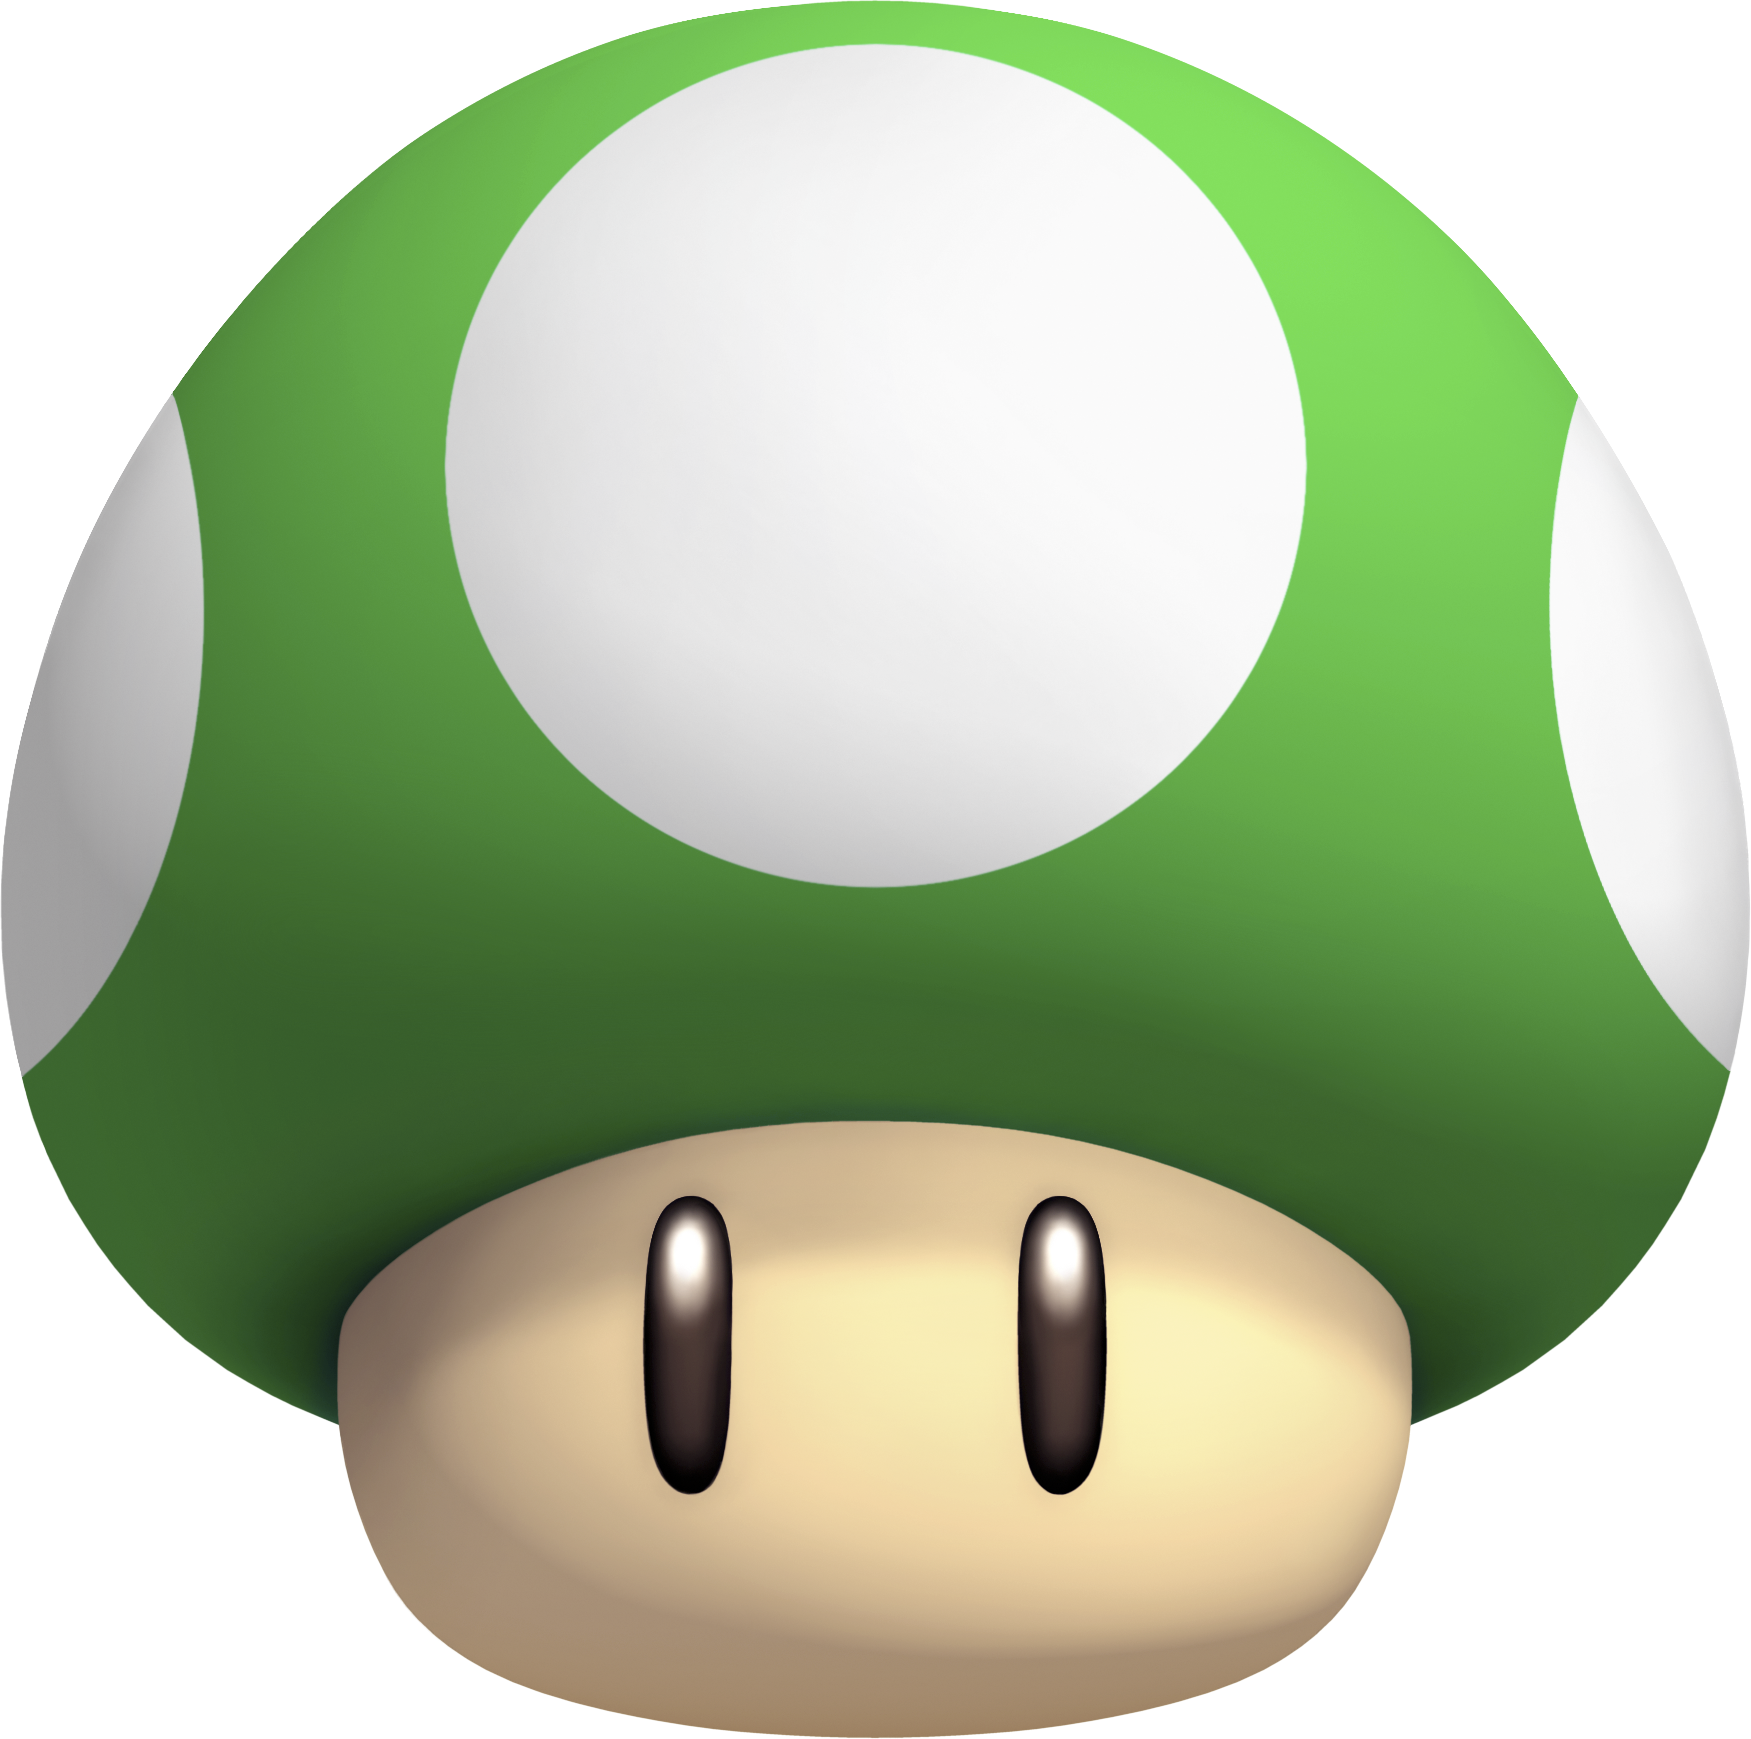 Mario clipart 1up Up powered by Up Mushroom